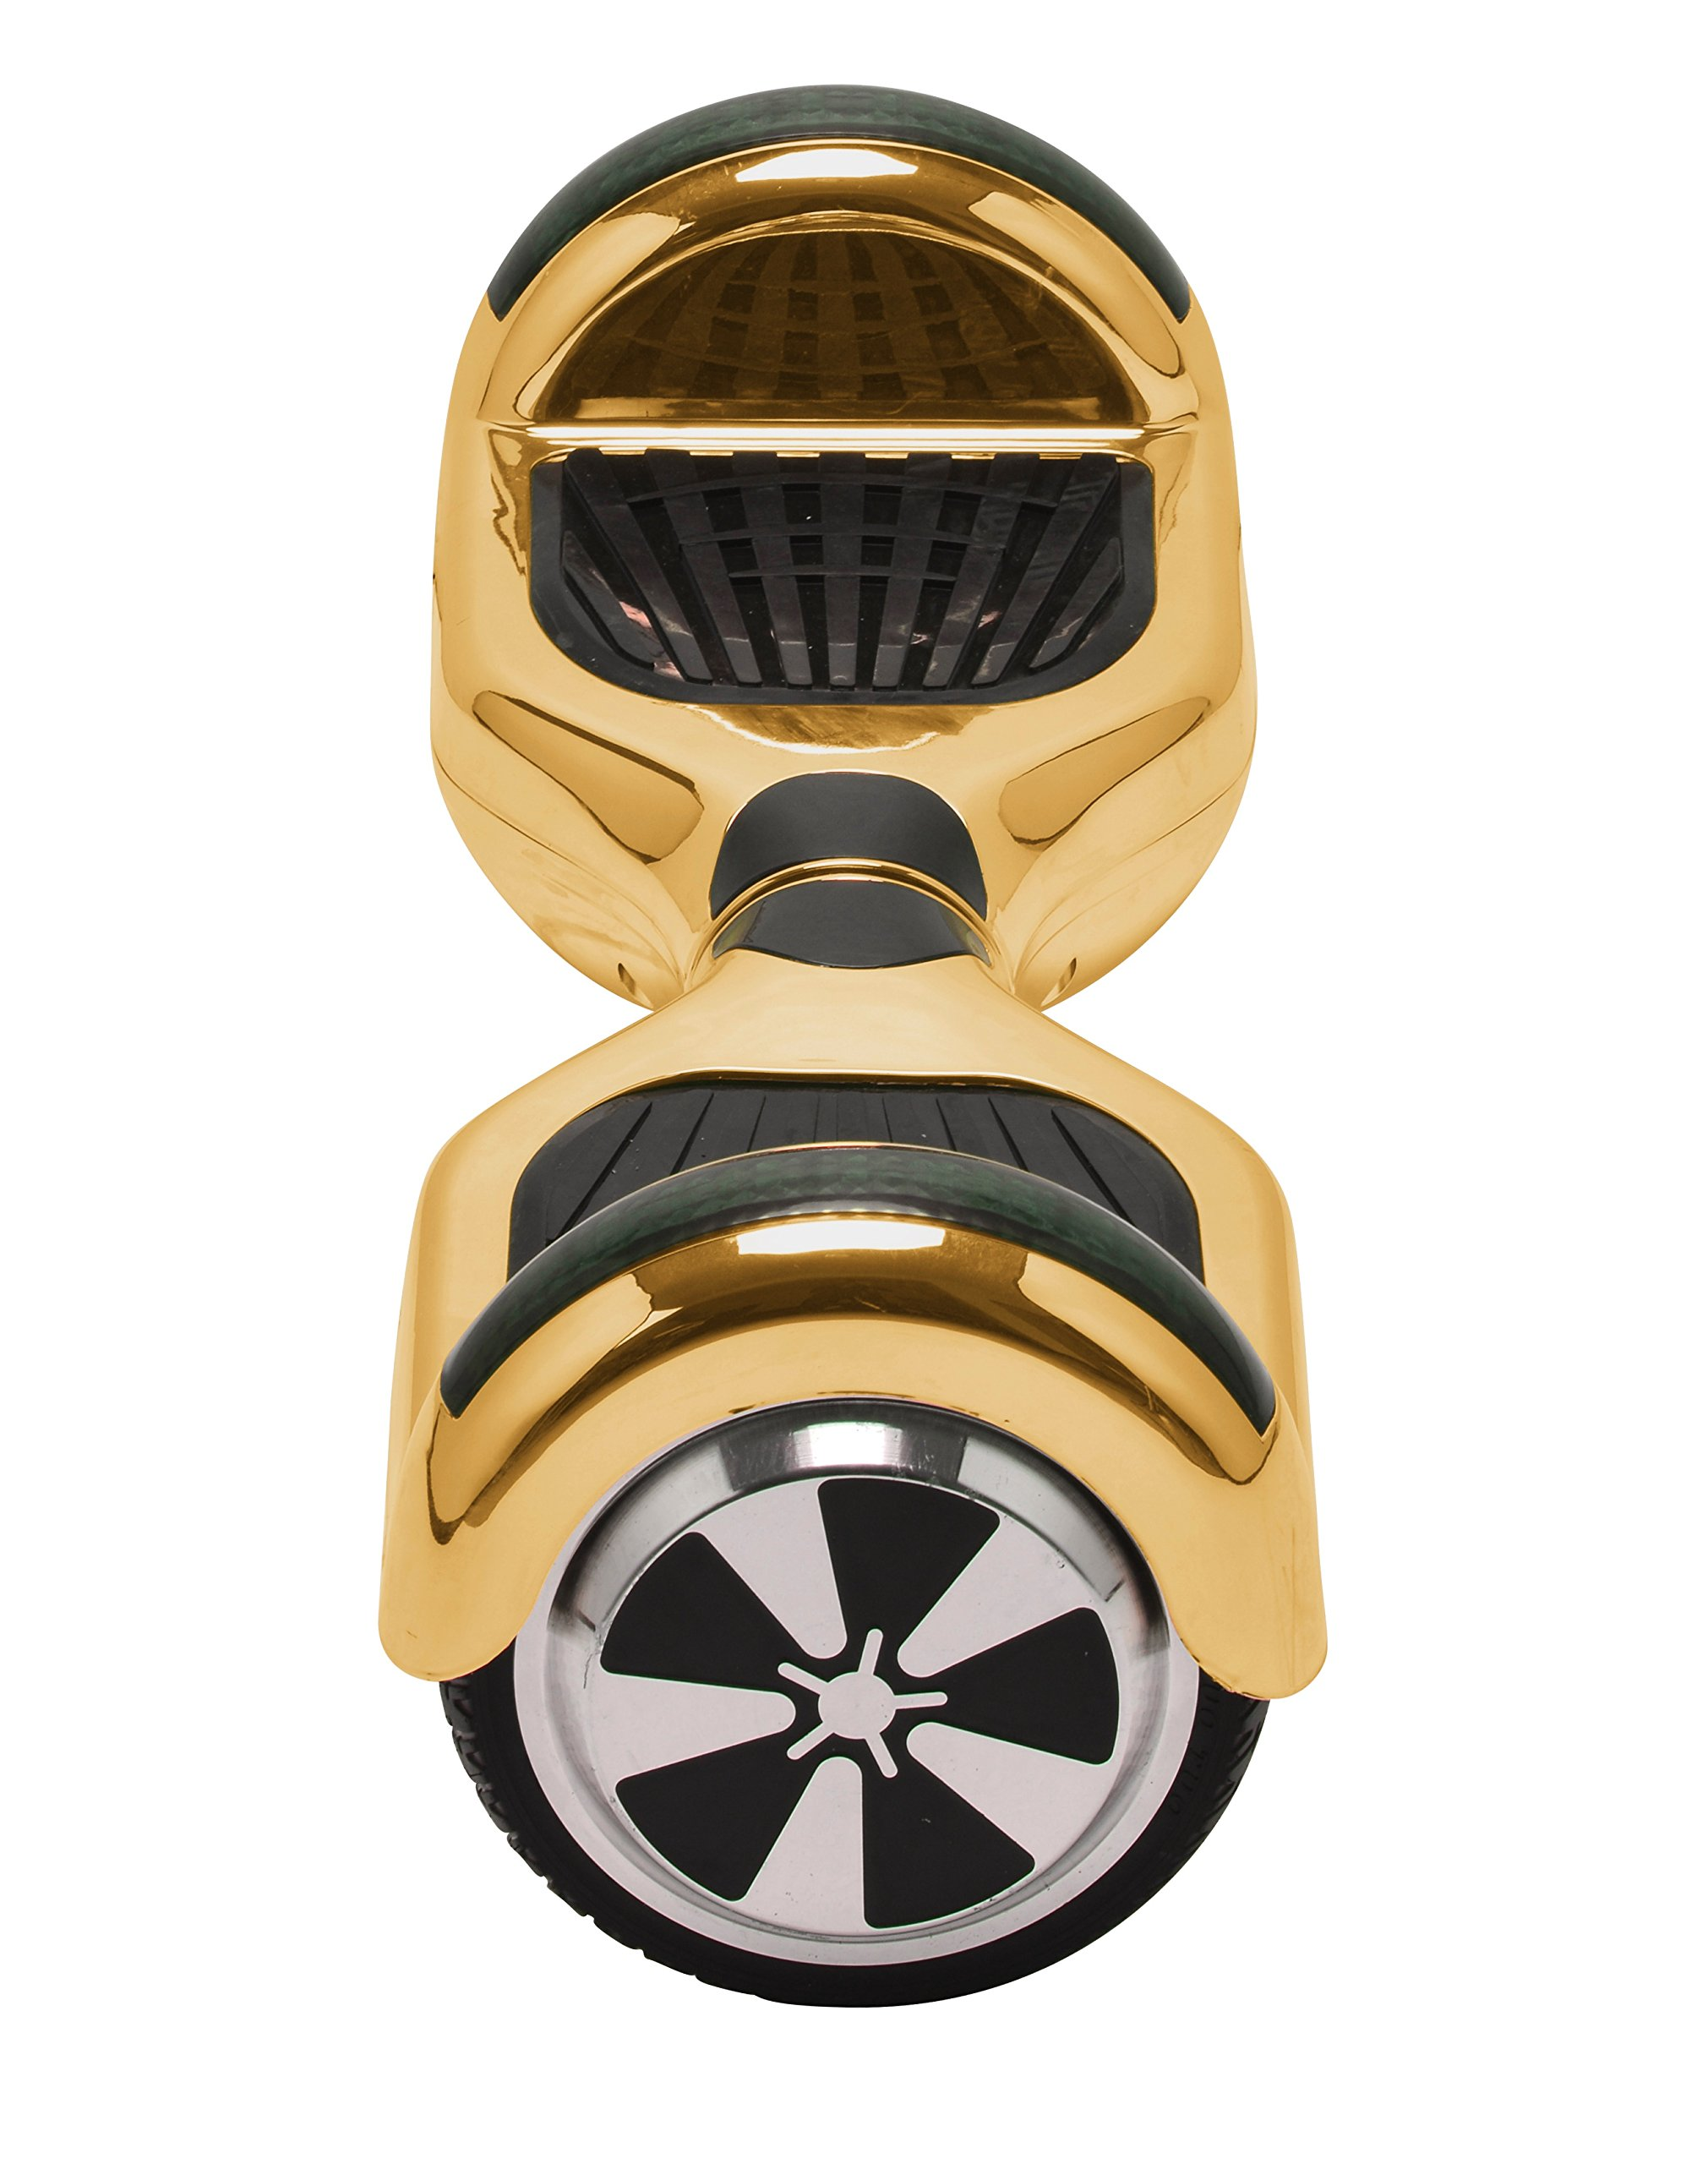 UL2272 Certified Hoverboard with Bluetooth Speaker and LED Lights Smart Self Balancing Scooter Personal Adult Transporter- Chrome Gold by Self Balance Scooter (Image #2)